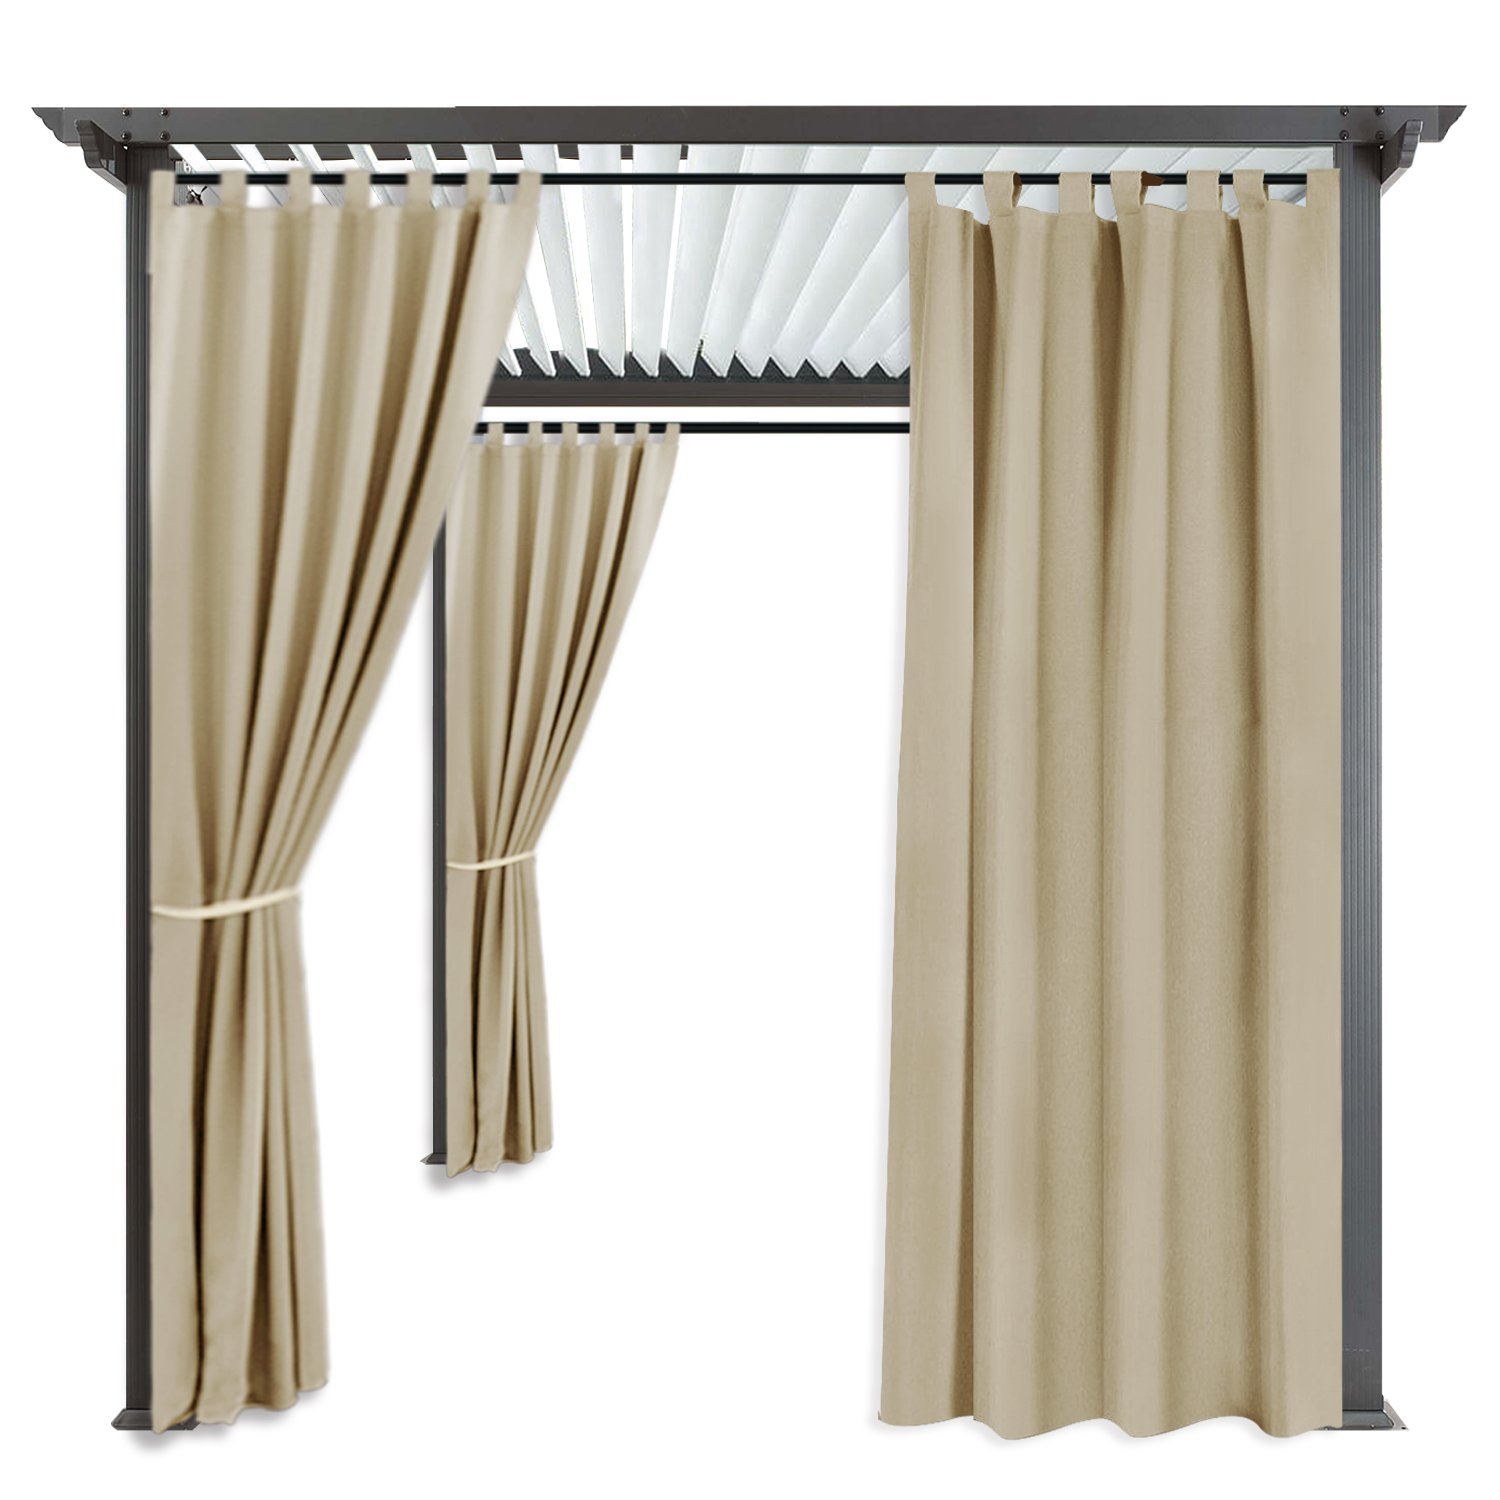 Indoor Outdoor Blackout Privacy Curtain - RYB HOME Tab Top Blackout Curtain Drape Fade Resitant UV Protection for Patio & Pergola, 1 Piece, 52 inch by 108 inch, Cream Beige